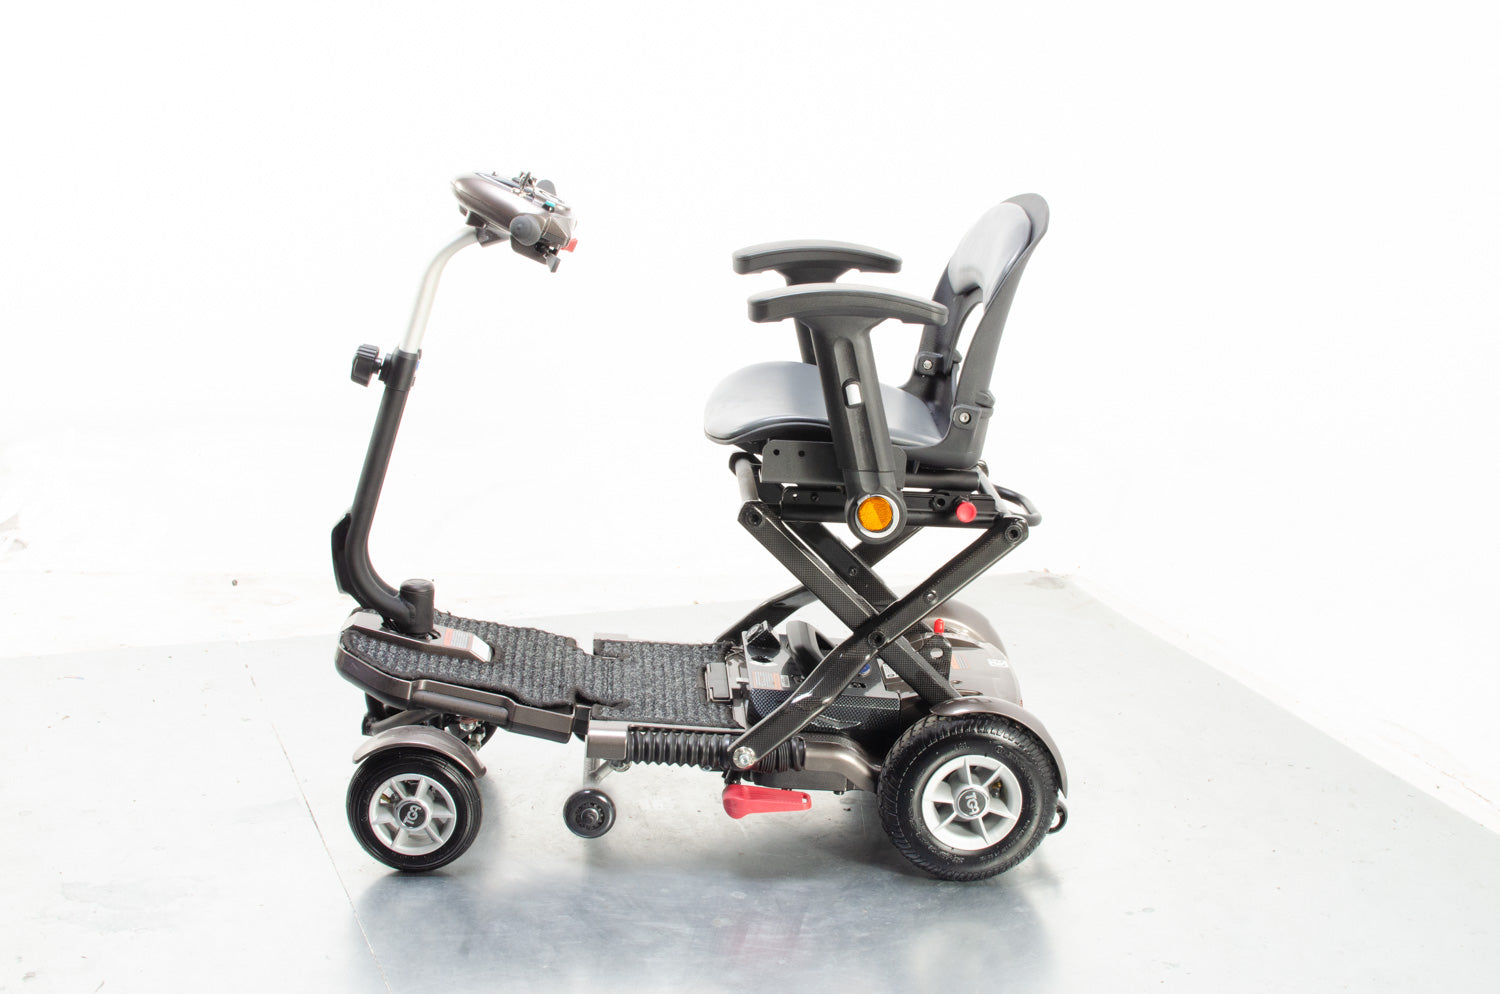 2018 TGA Minimo Plus 4 Compact Folding 4mph Mobility Scooter in Bronze